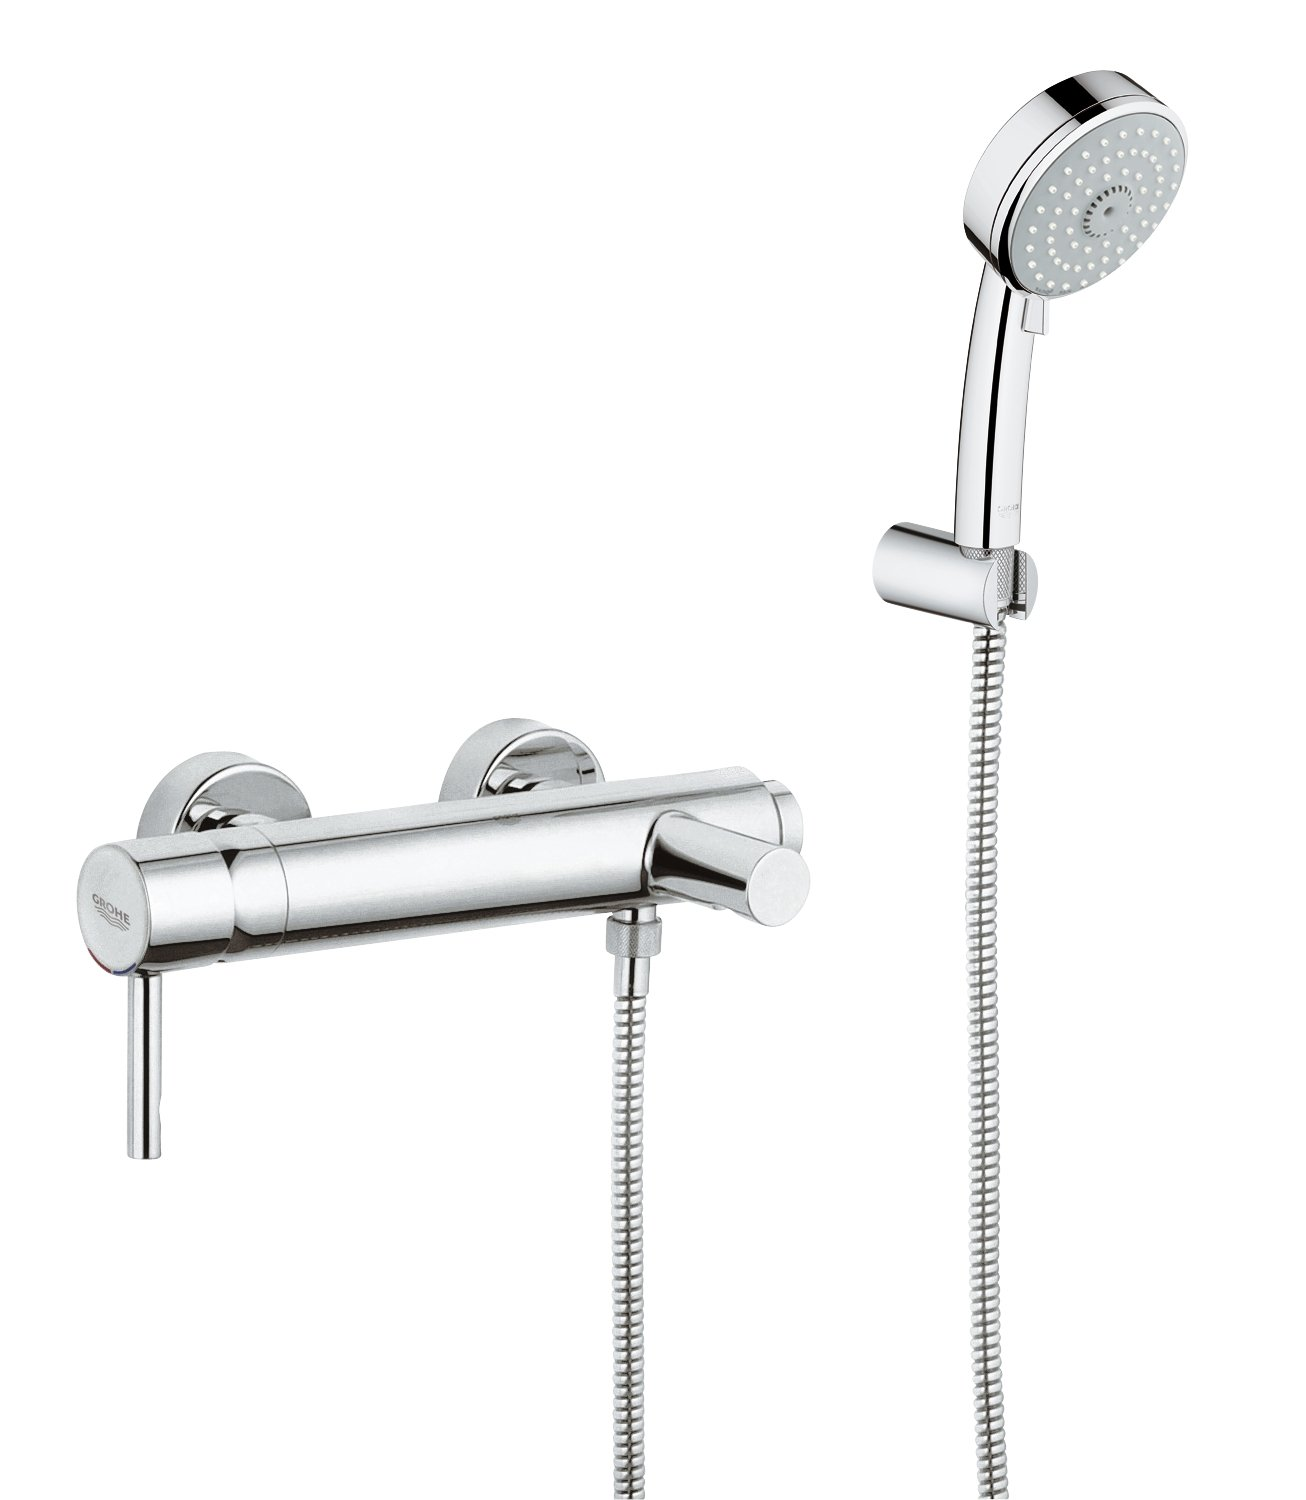 grohe 33628000 essence bath tap with shower set 3 spray patterns grohe 33628000 essence bath tap with shower set 3 spray patterns and ecojoy amazon co uk diy tools